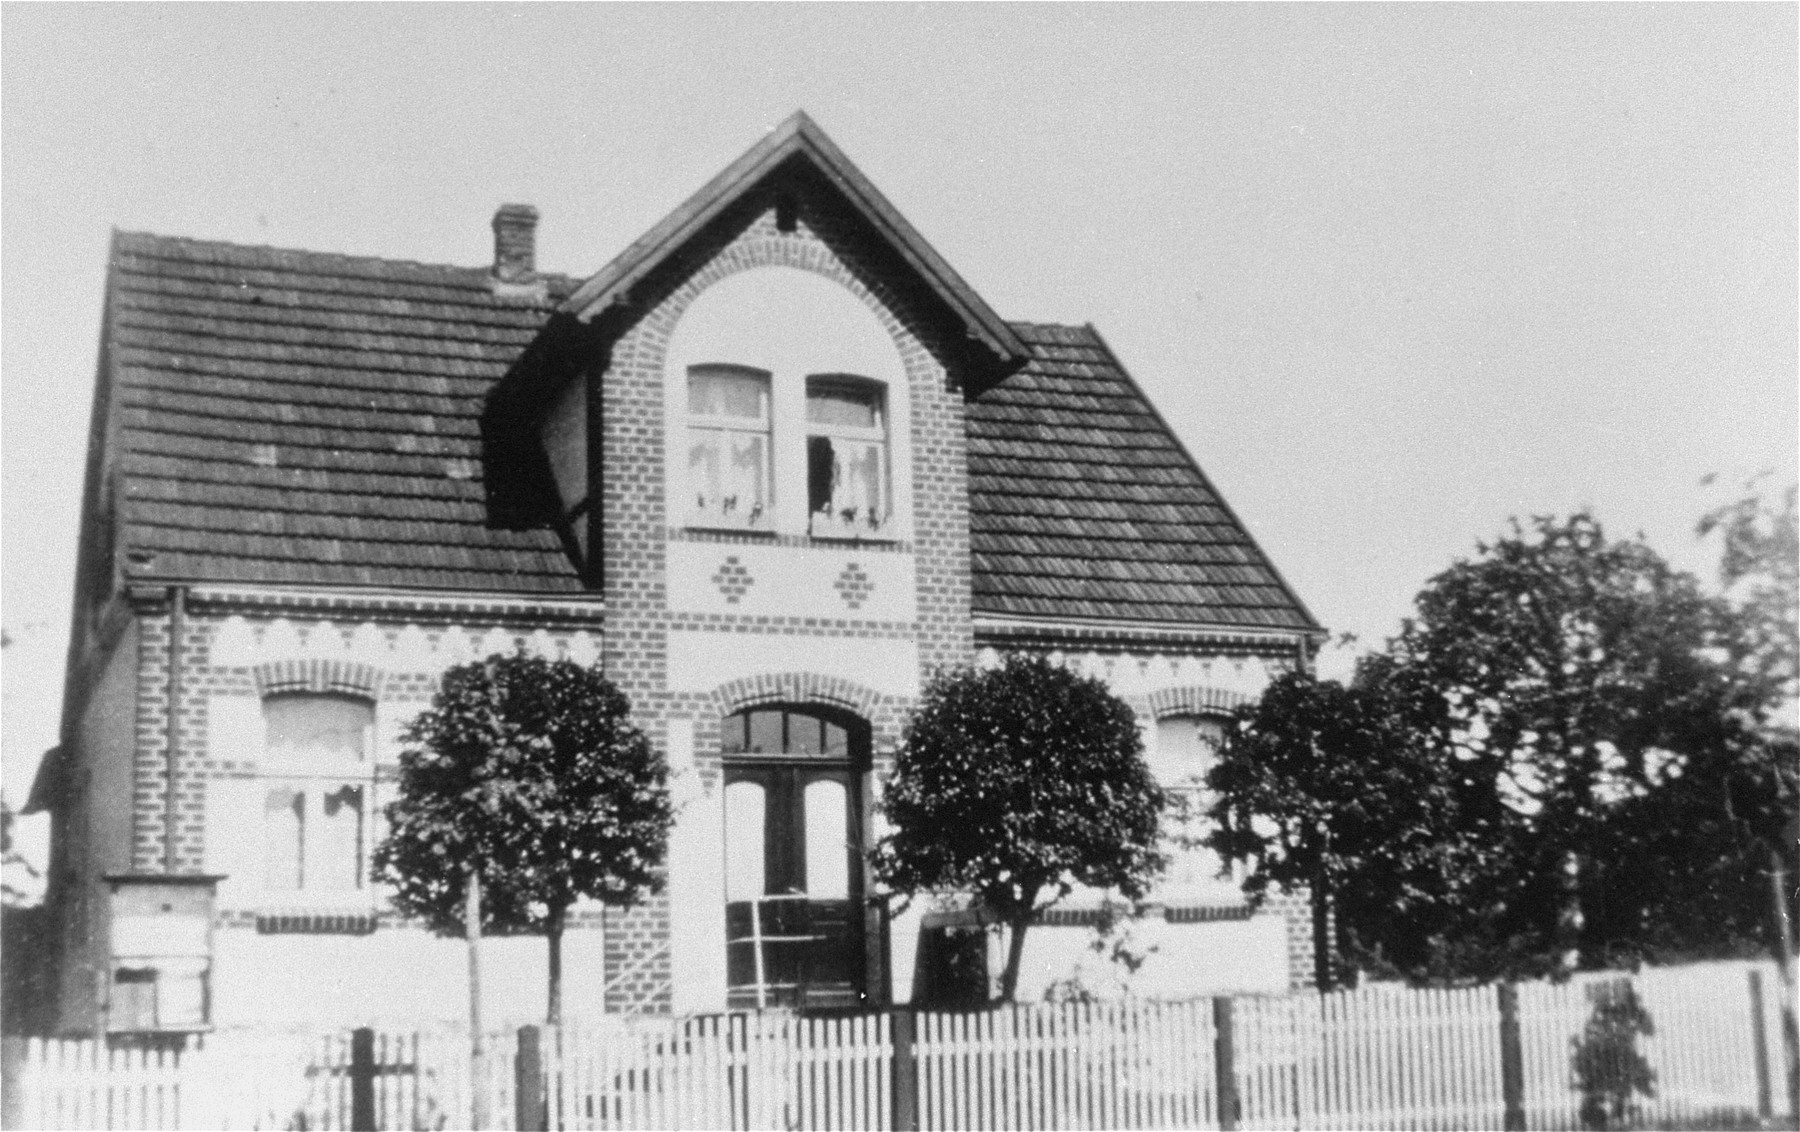 The Kusserow family home in Bad Lippspringe.